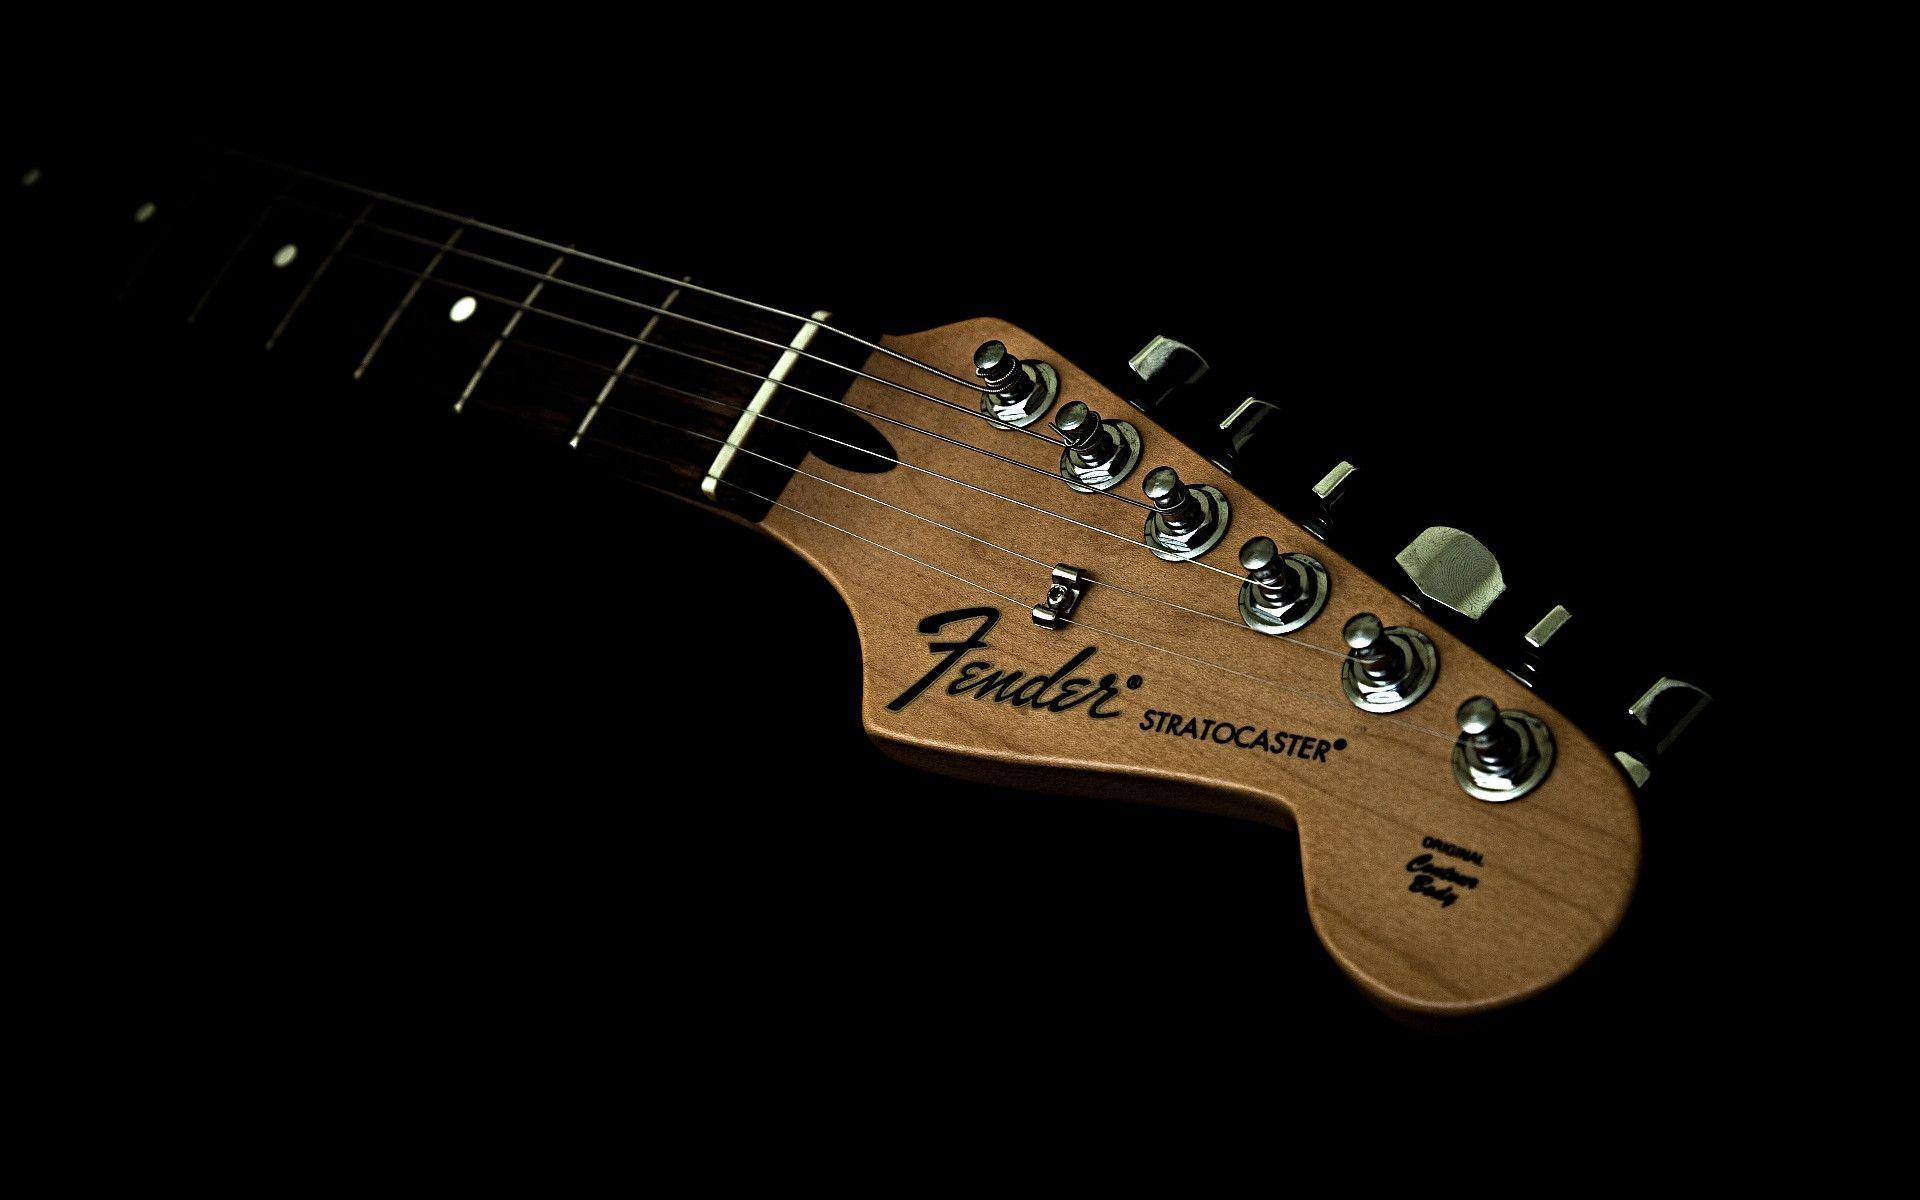 Fender guitar wallpapers wallpaper cave - Fender wallpaper ...